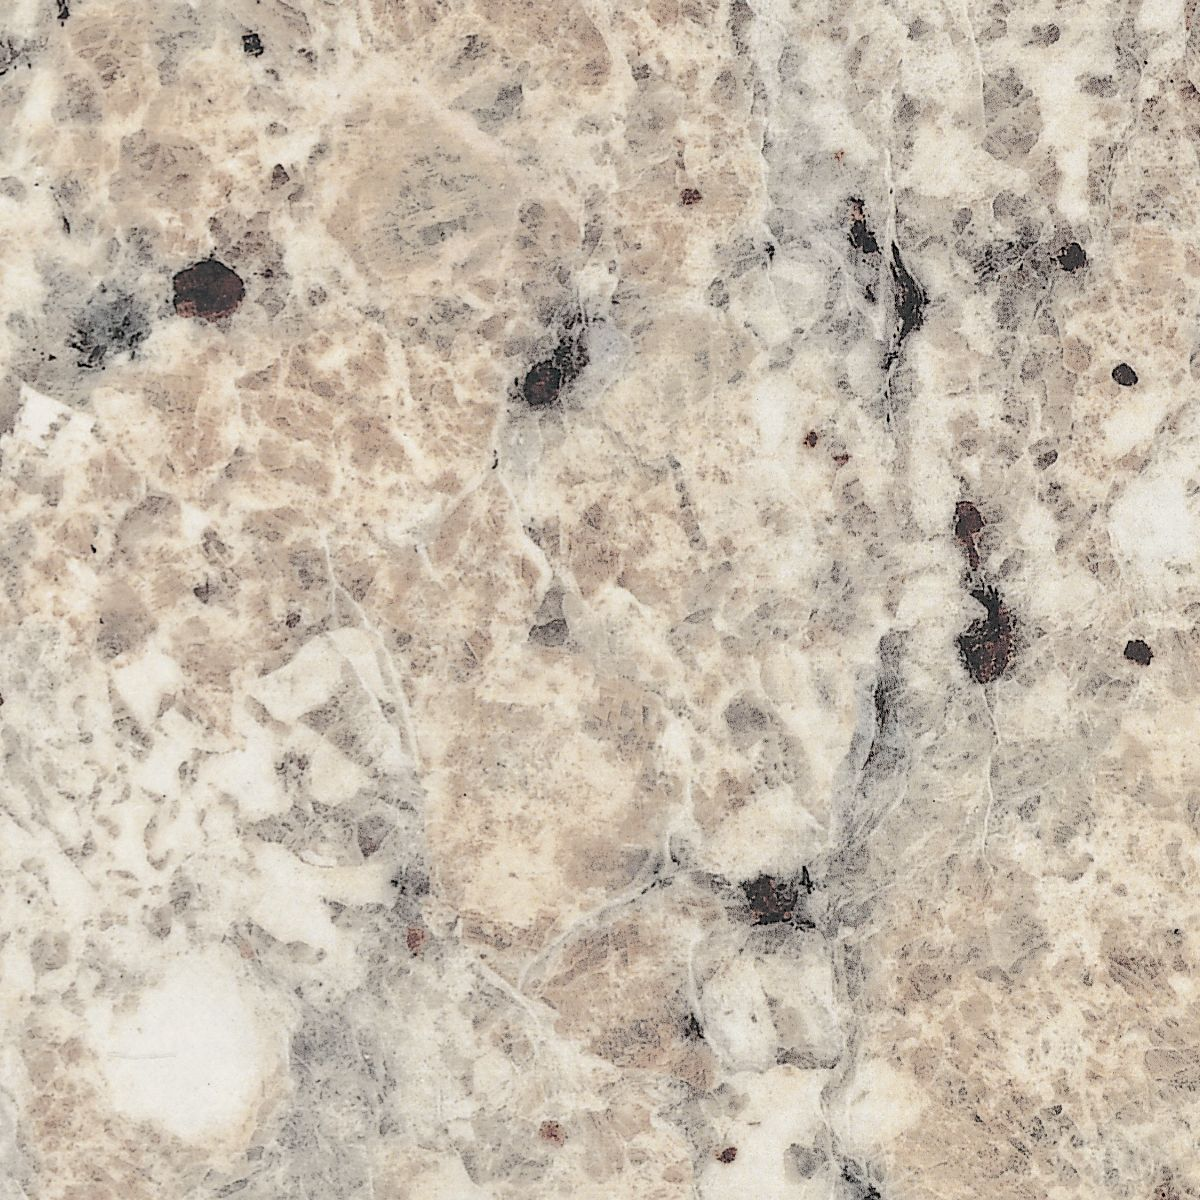 formica kitchen countertops Ogee edge trim in Formica Ouro Romano Ships fast from our manufacturing facility Supplies installation tools for laminate countertop fabrication